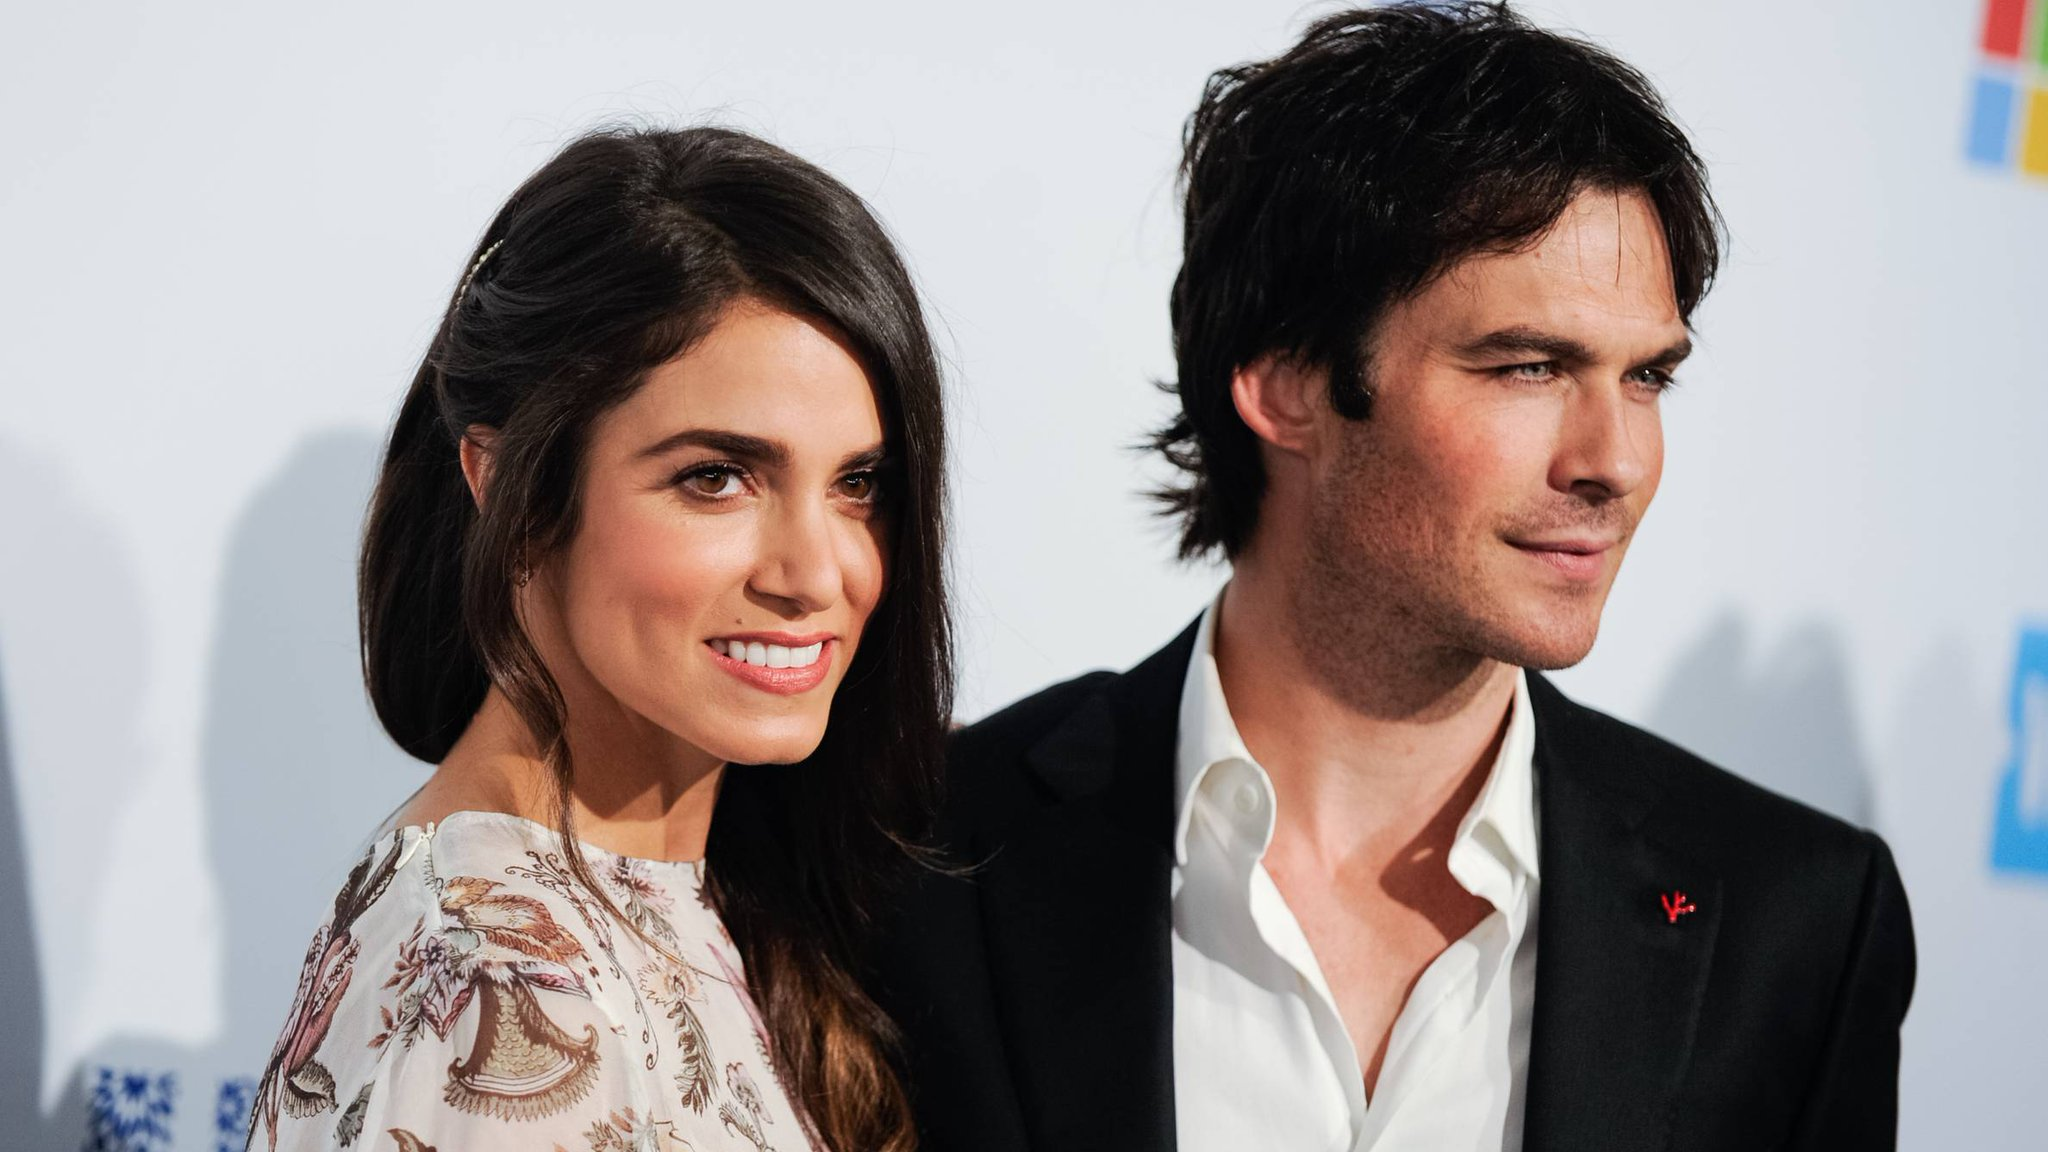 Congrats to @NikkiReed_I_Am and @iansomerhalder on the birth of their baby girl: https://t.co/ru7v8V7WDK �� https://t.co/Bk5clrQx1w